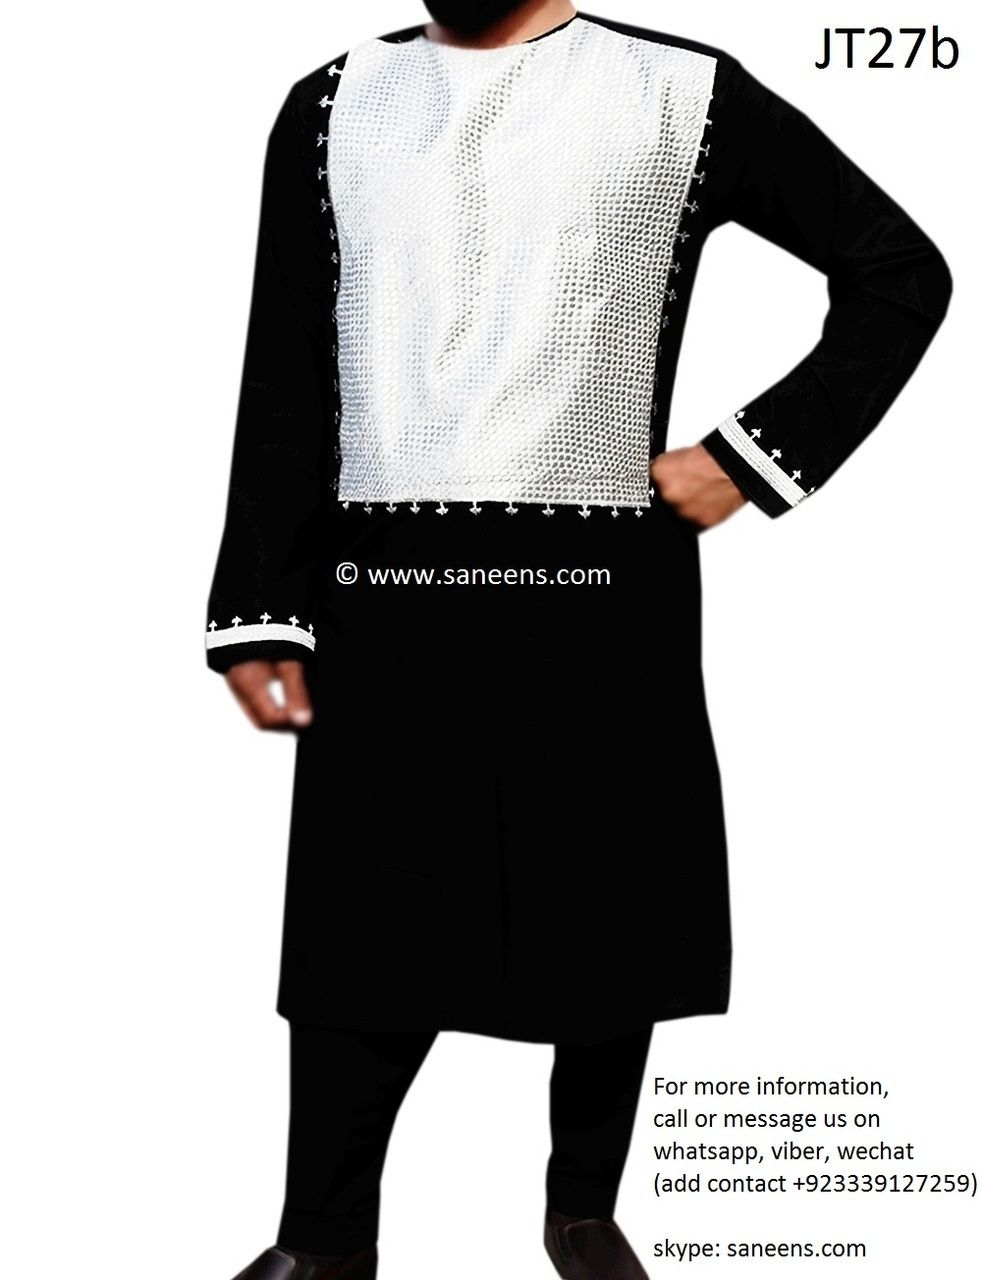 Afghani Dress New Style Afghan Men Clothes In Black And Silver Color Afghan Clothes Afghan Fashion Dress Clothes For Women